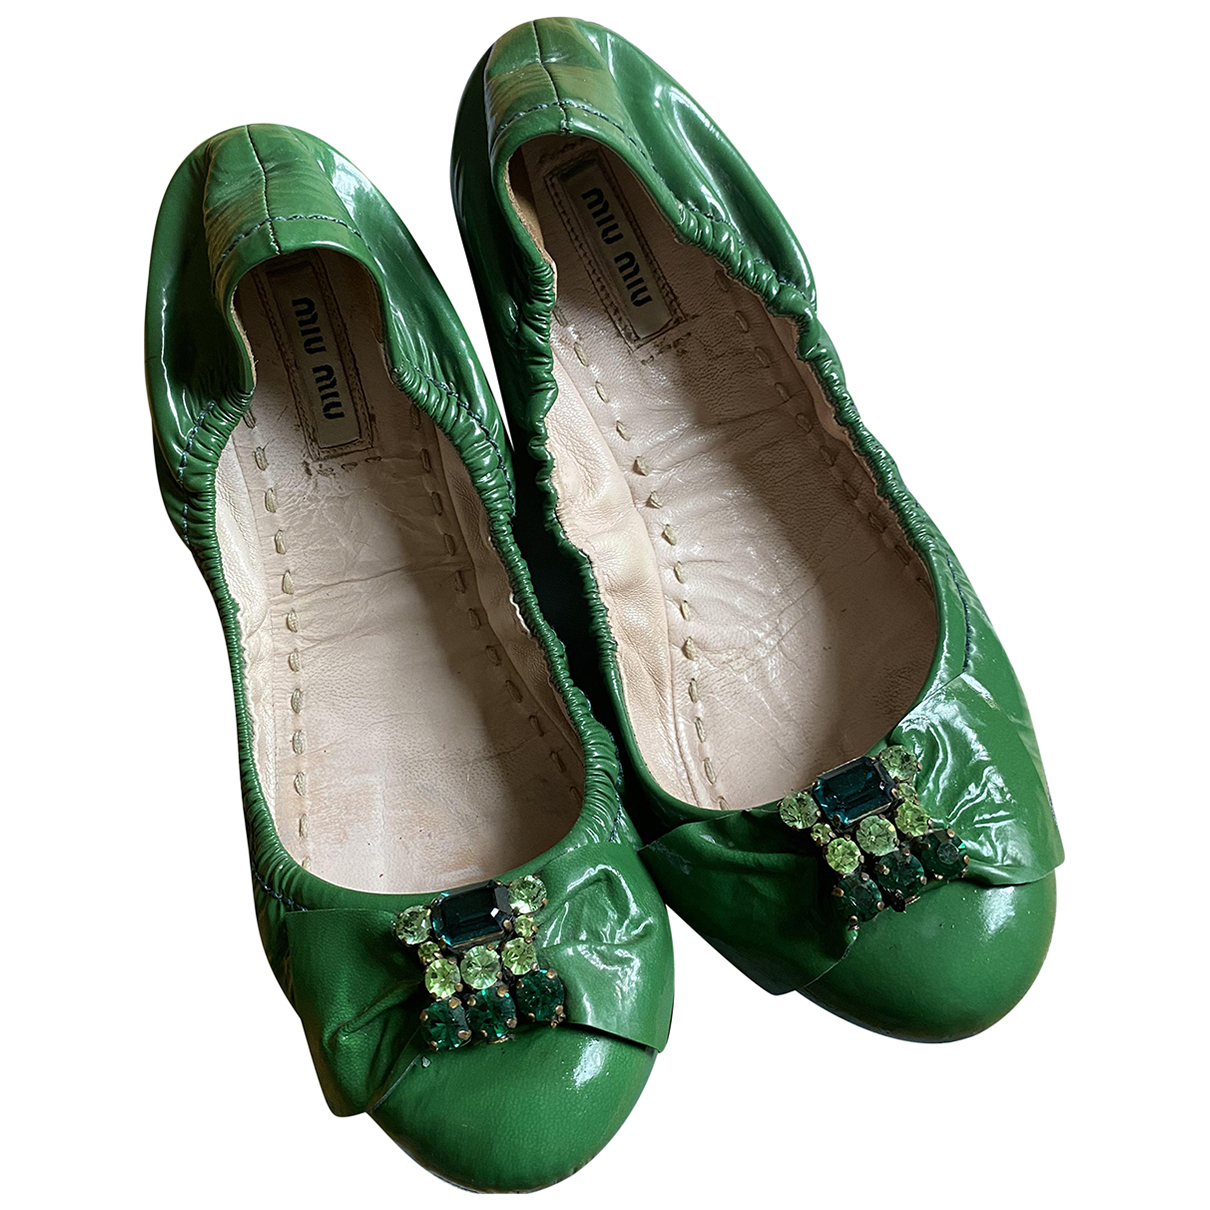 Miu Miu \N Ballerinas in  Gruen Lackleder